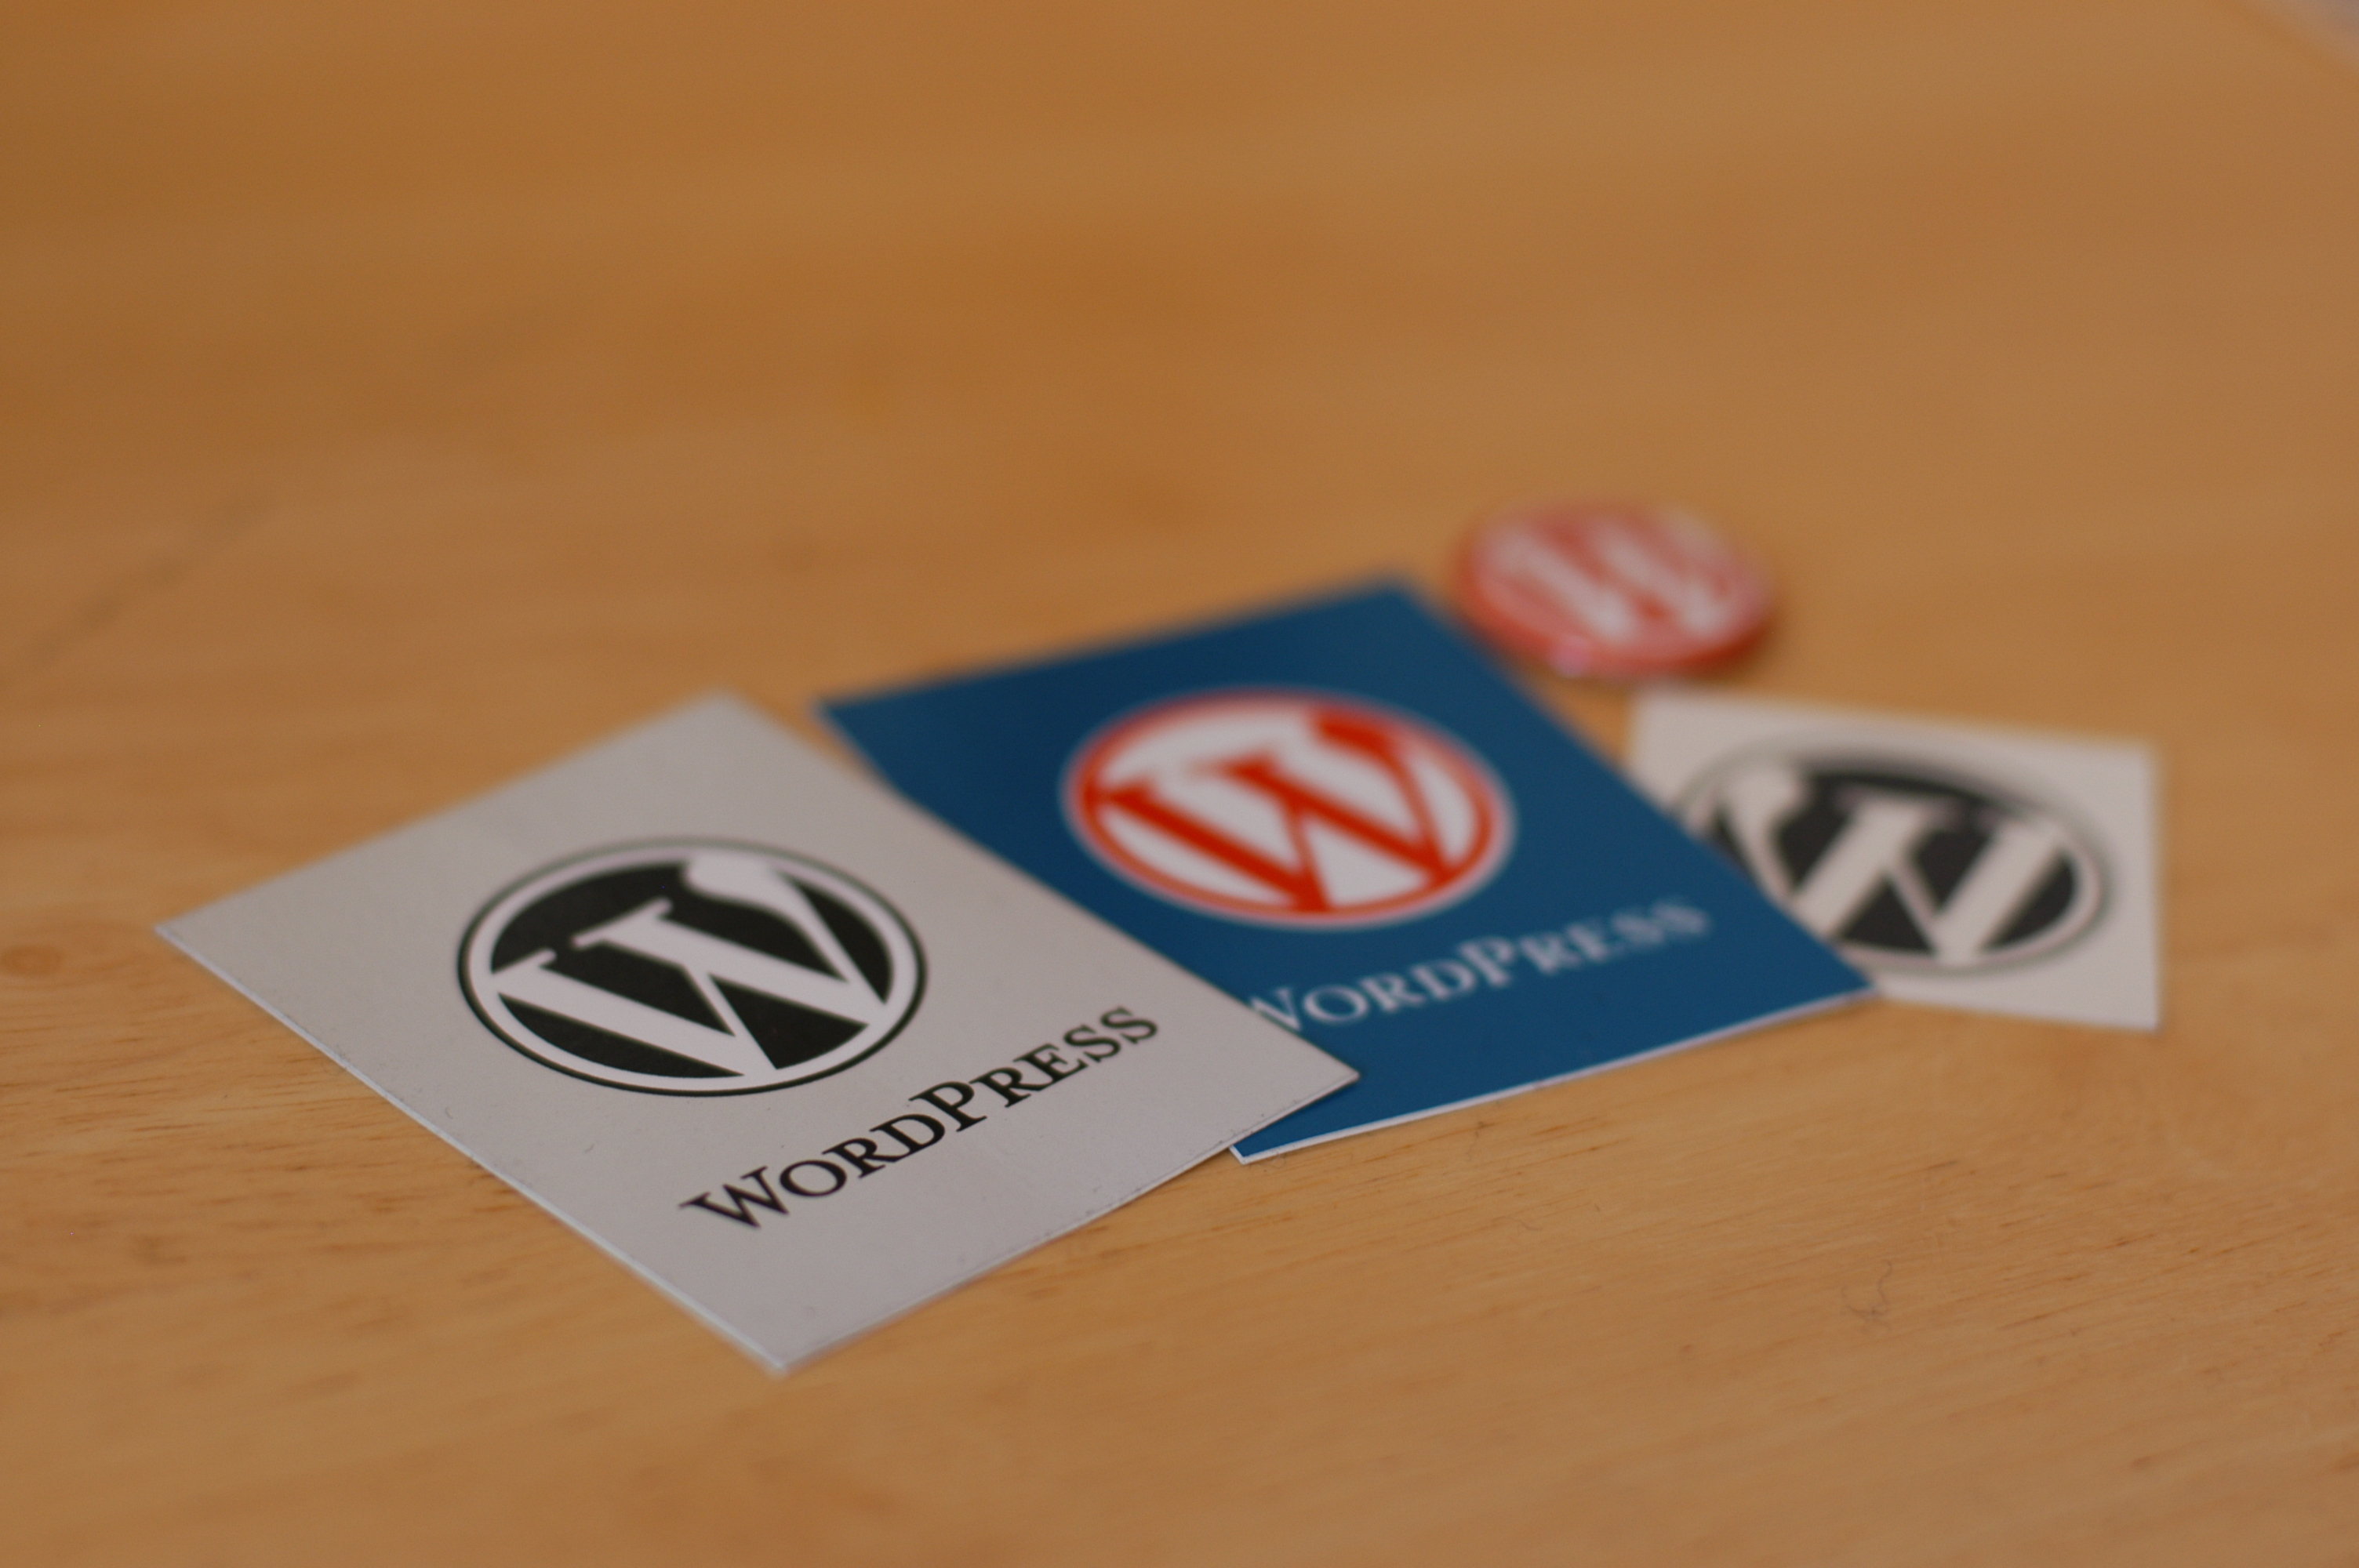 How Automattic wants to build the operating system of the web